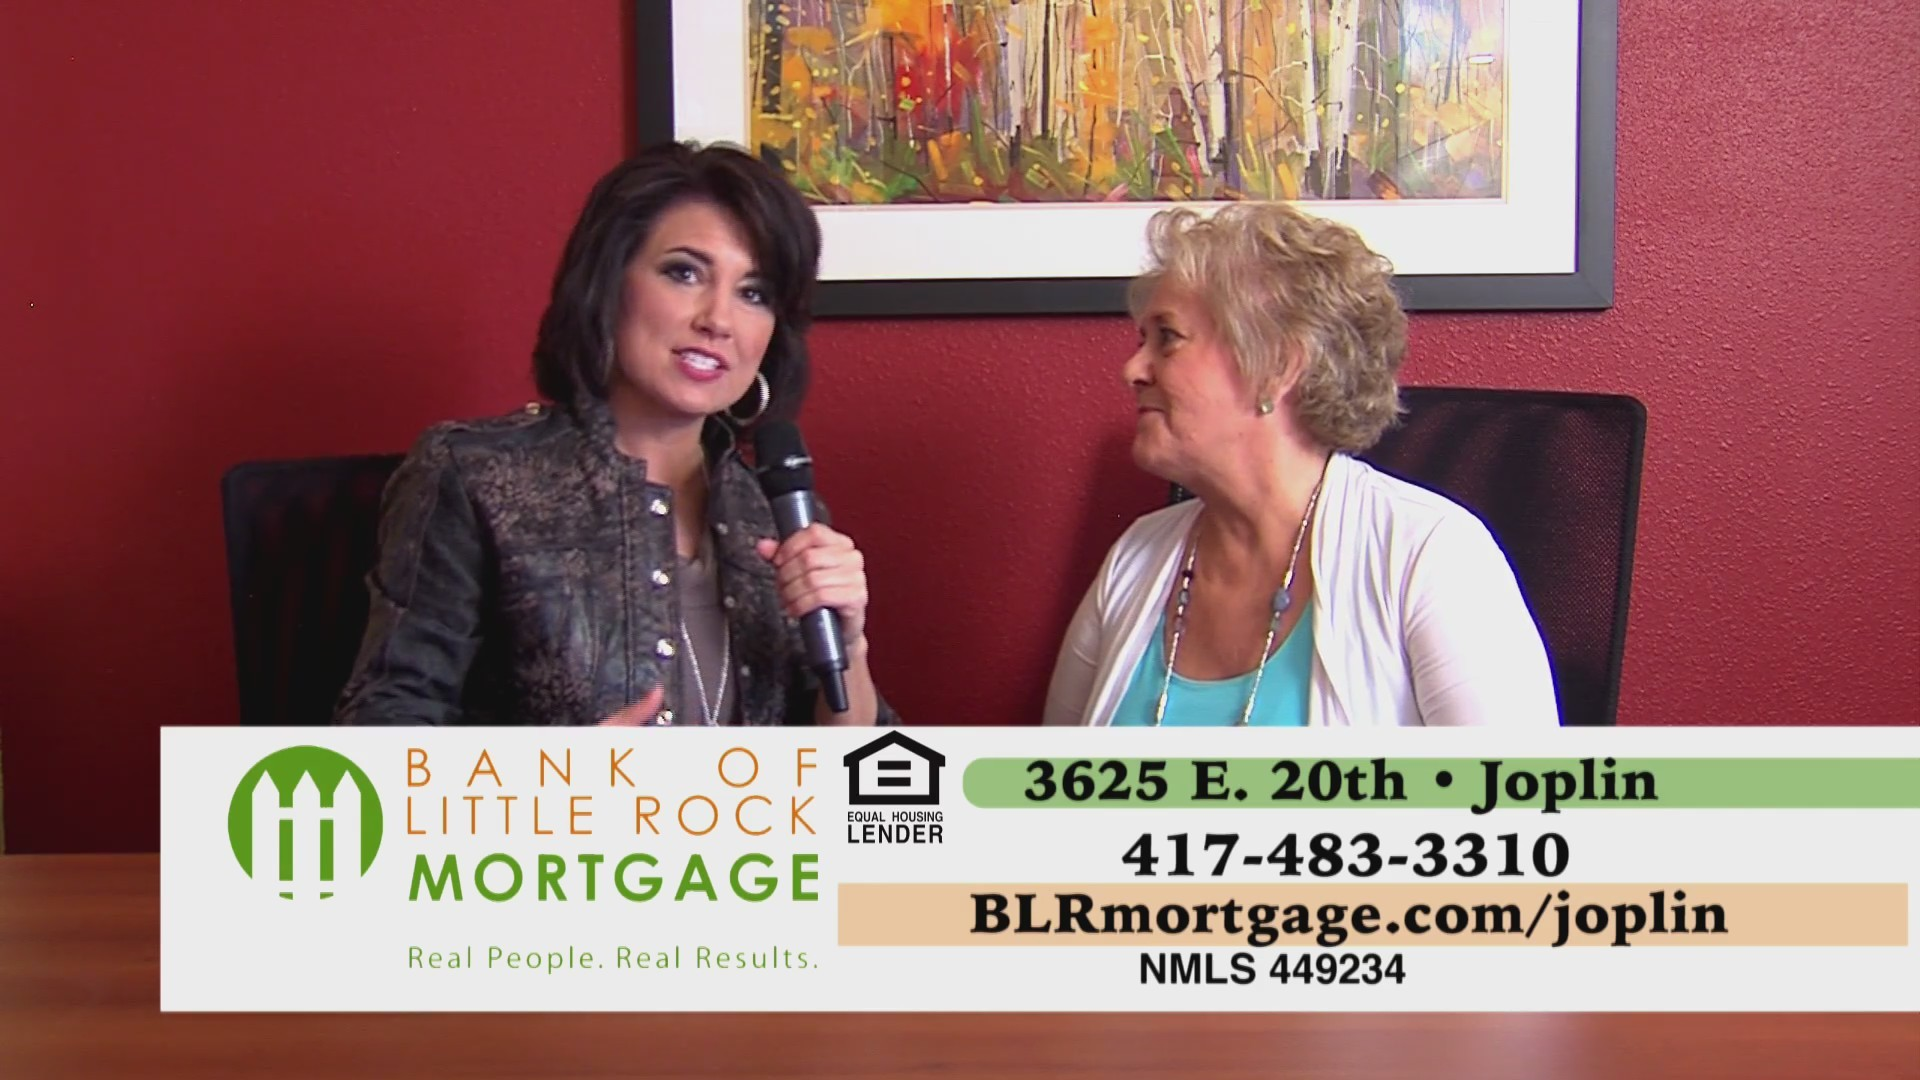 Bank of Little Rock Mortgage - April 2018 (021919)